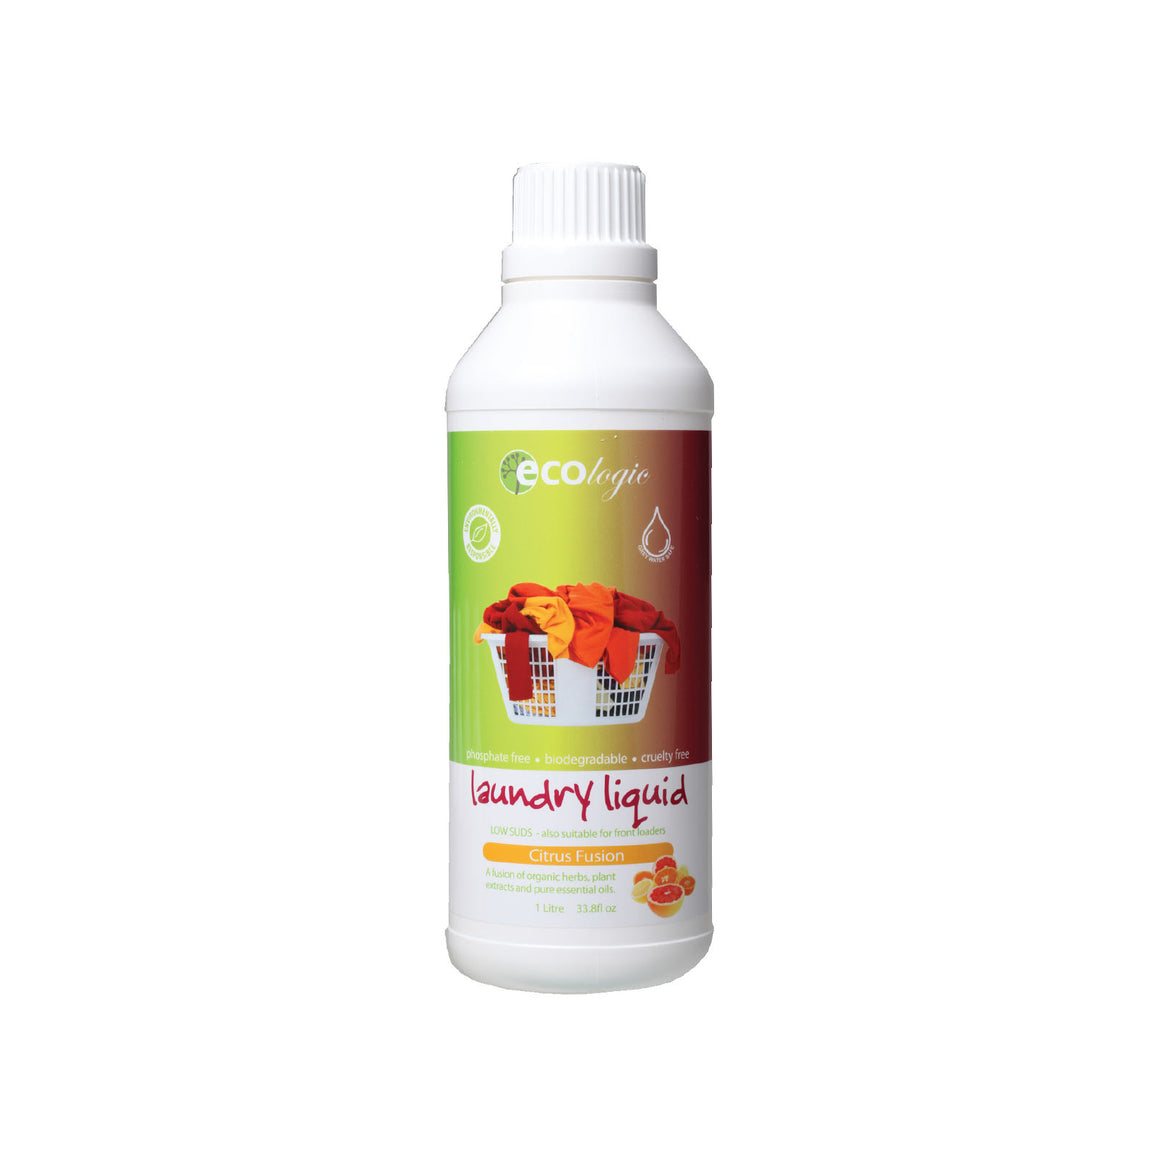 Ecologic Laundry Liquid Citrus Fusion - 1L